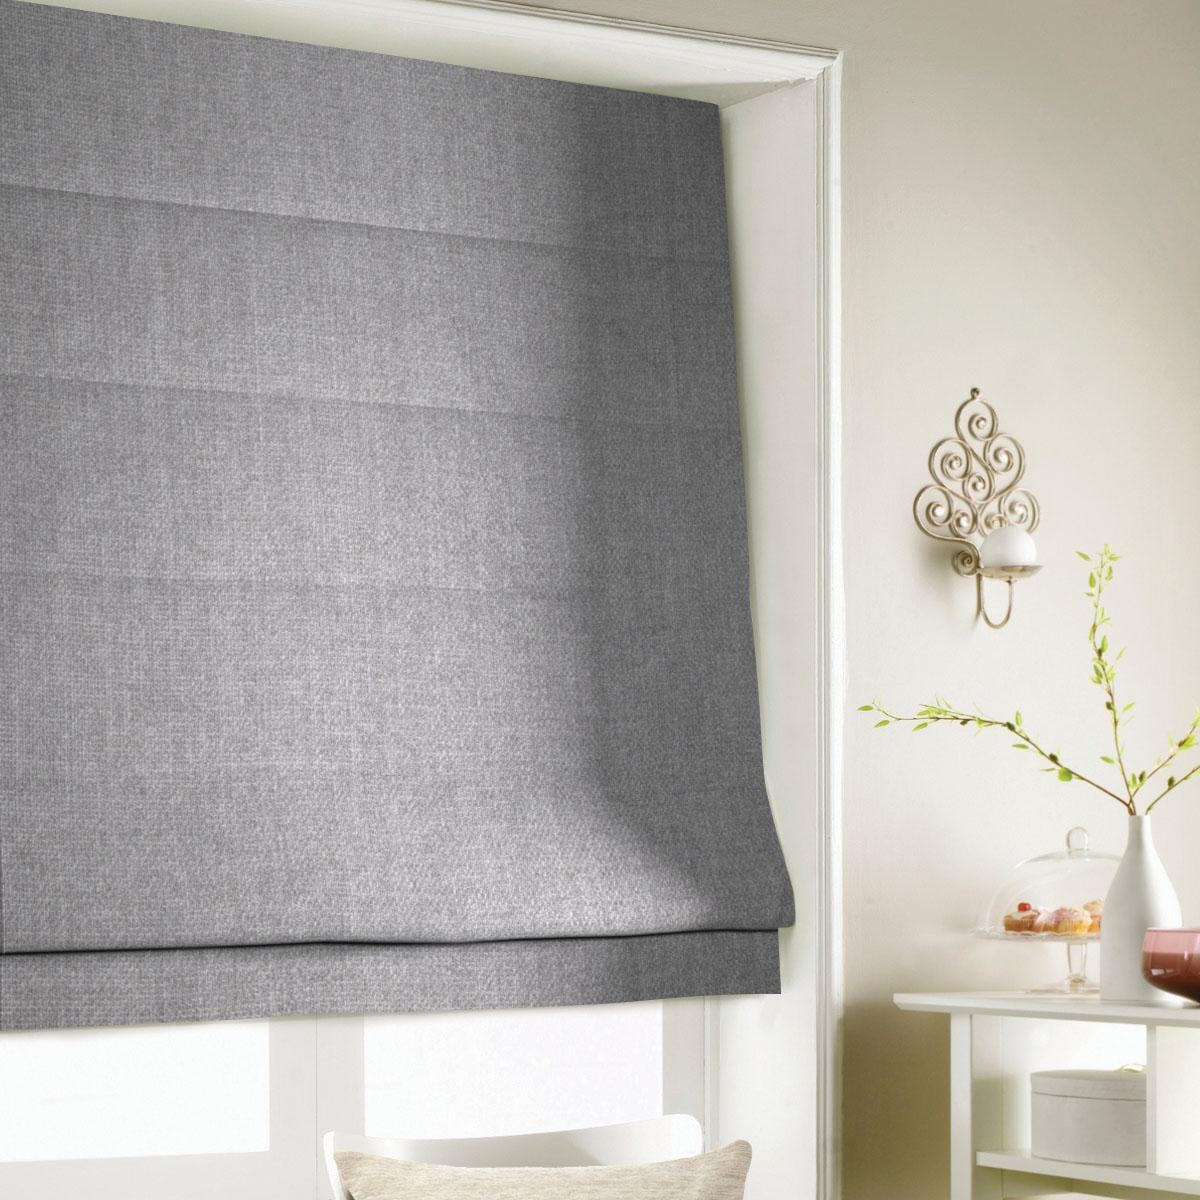 Heavy Weave Roman Blind Roman Blinds Pinterest Grey Search Pertaining To Roman Fabric Blinds (Image 4 of 15)